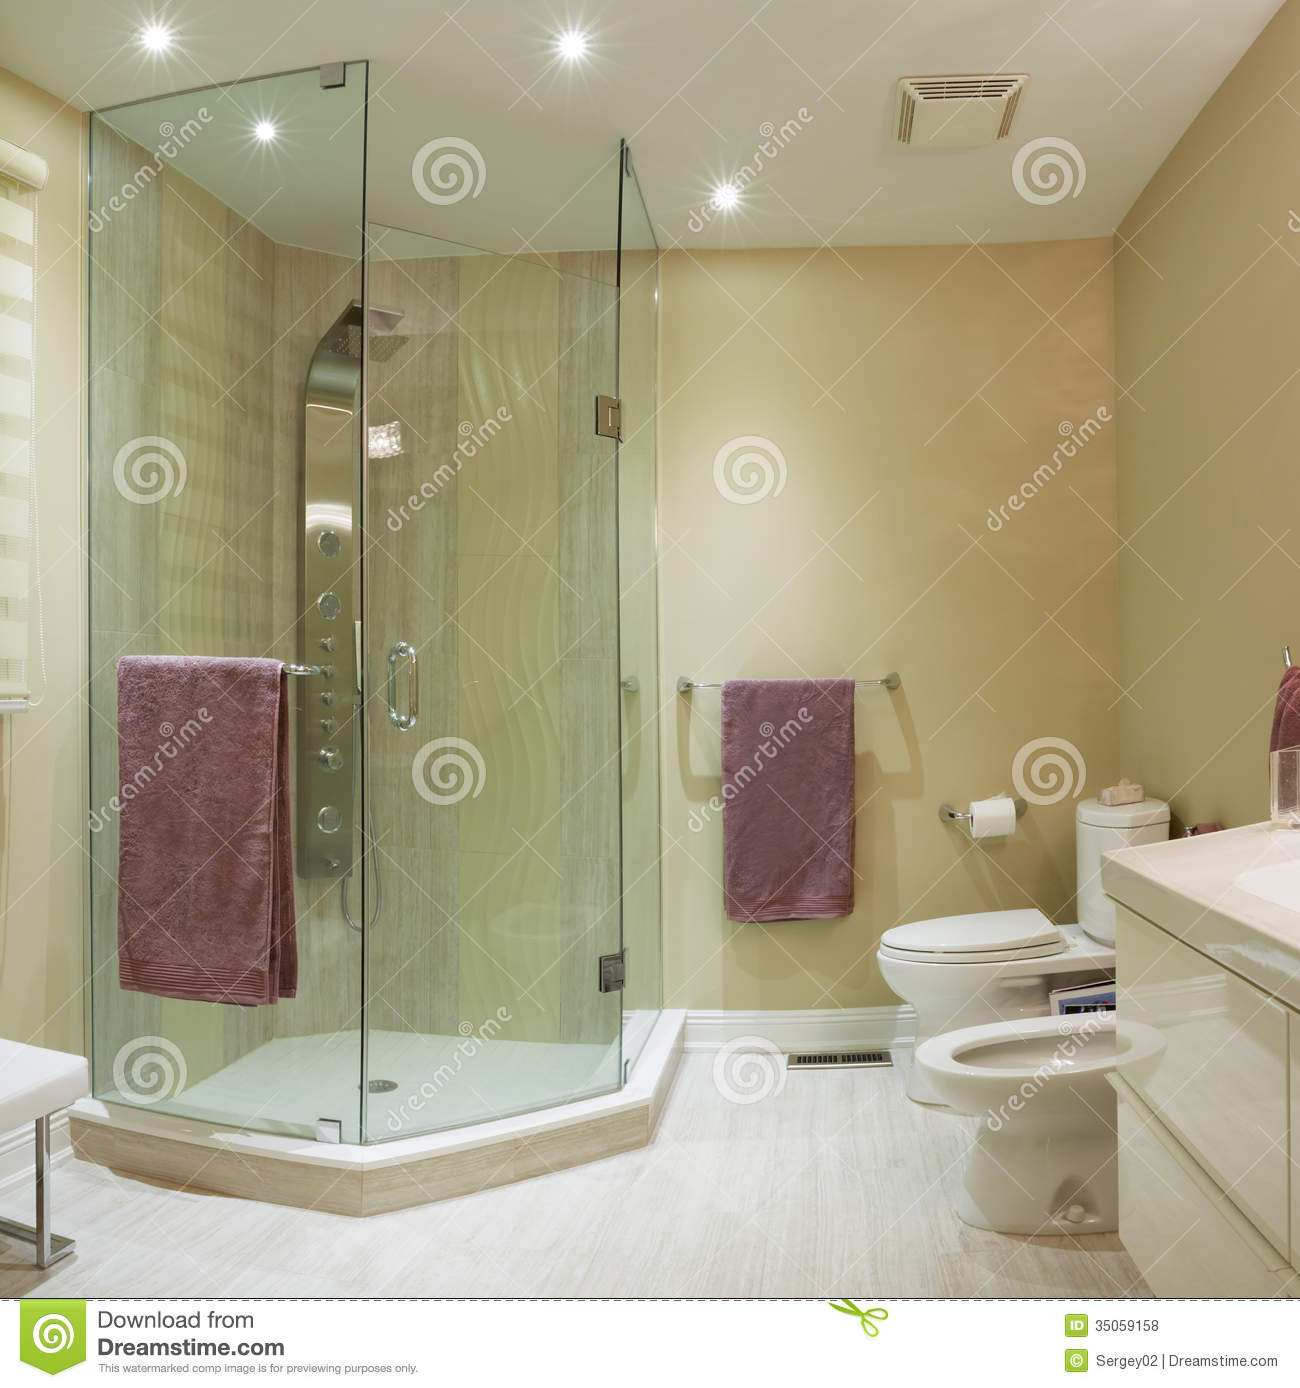 Interior design royalty free stock photos image 35059158 for House bathroom design